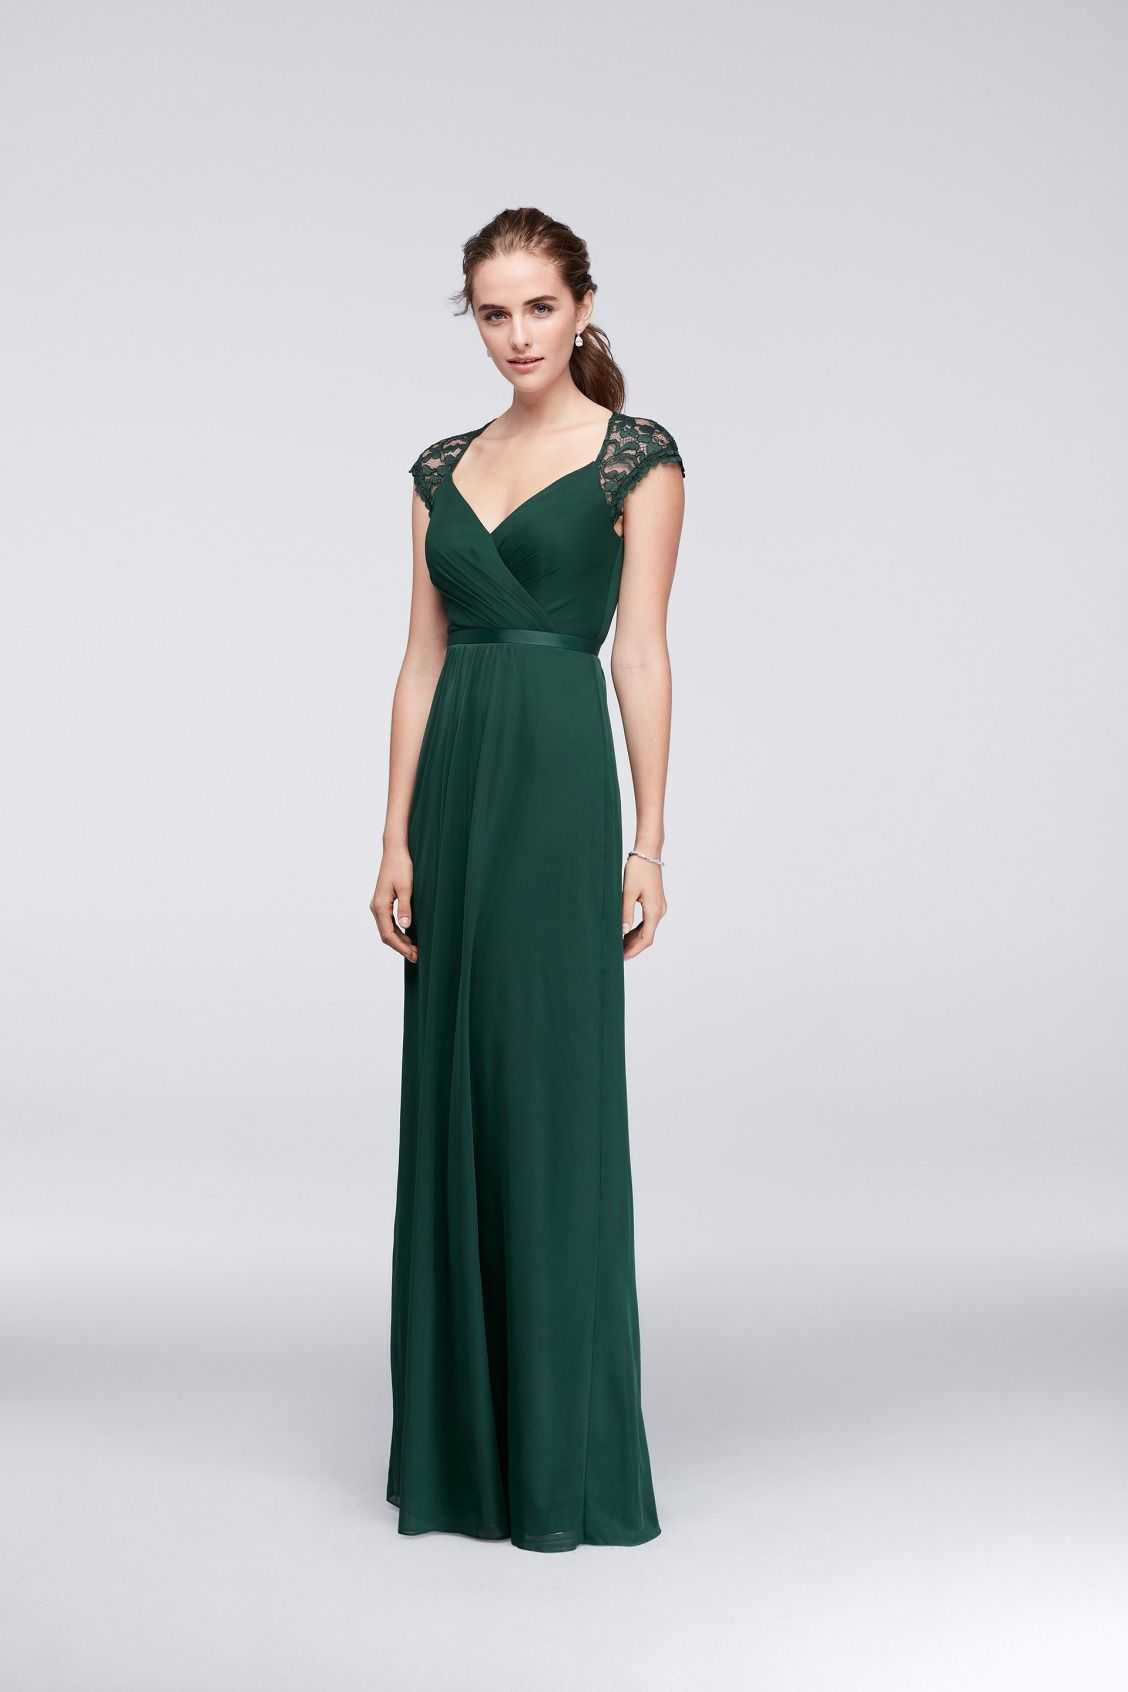 4a136f82f283 Juniper Green Long Mesh Bridesmaid Dress with Lace Cap Sleeves and Open  Back by David's Bridal